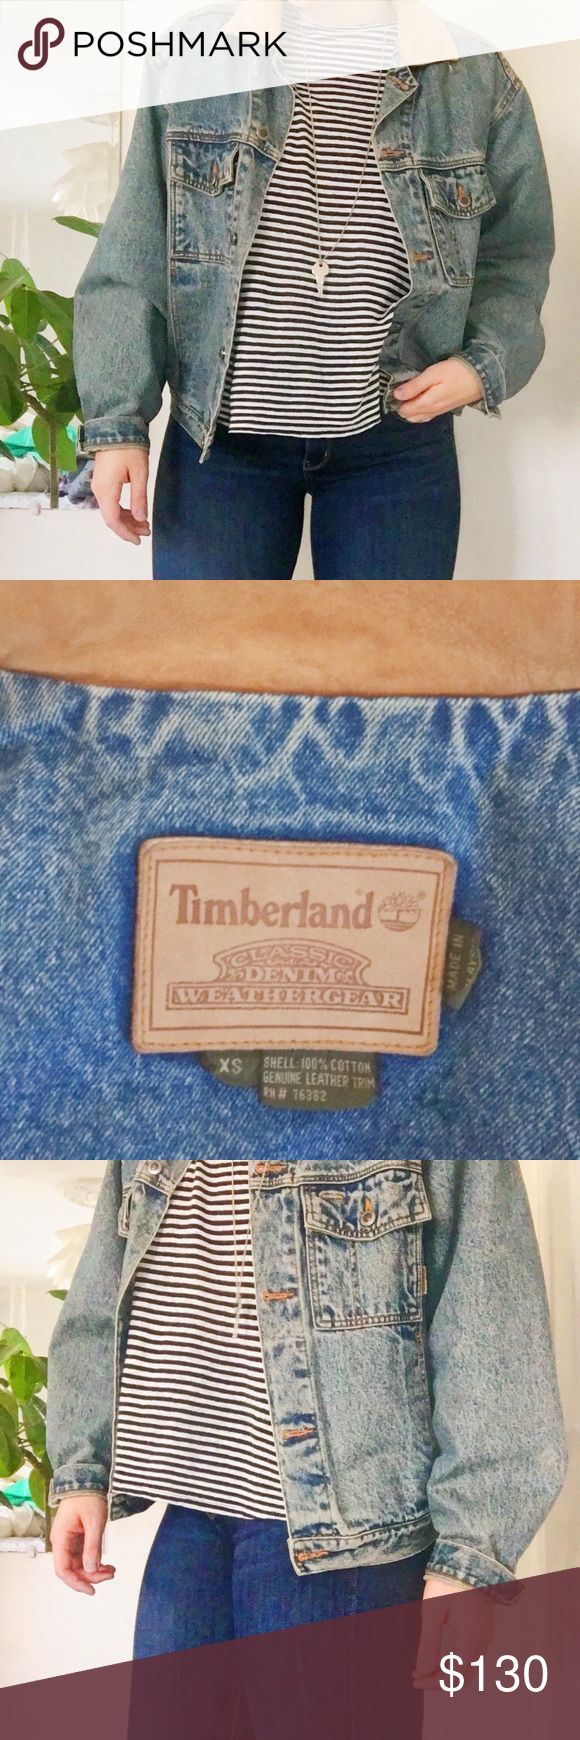 Timberland Jacket Acid wash denim jacket with suede collar! XS but I'm usually a Medium and it fits on the bigger side! Timberland Jackets & Coats Jean Jackets